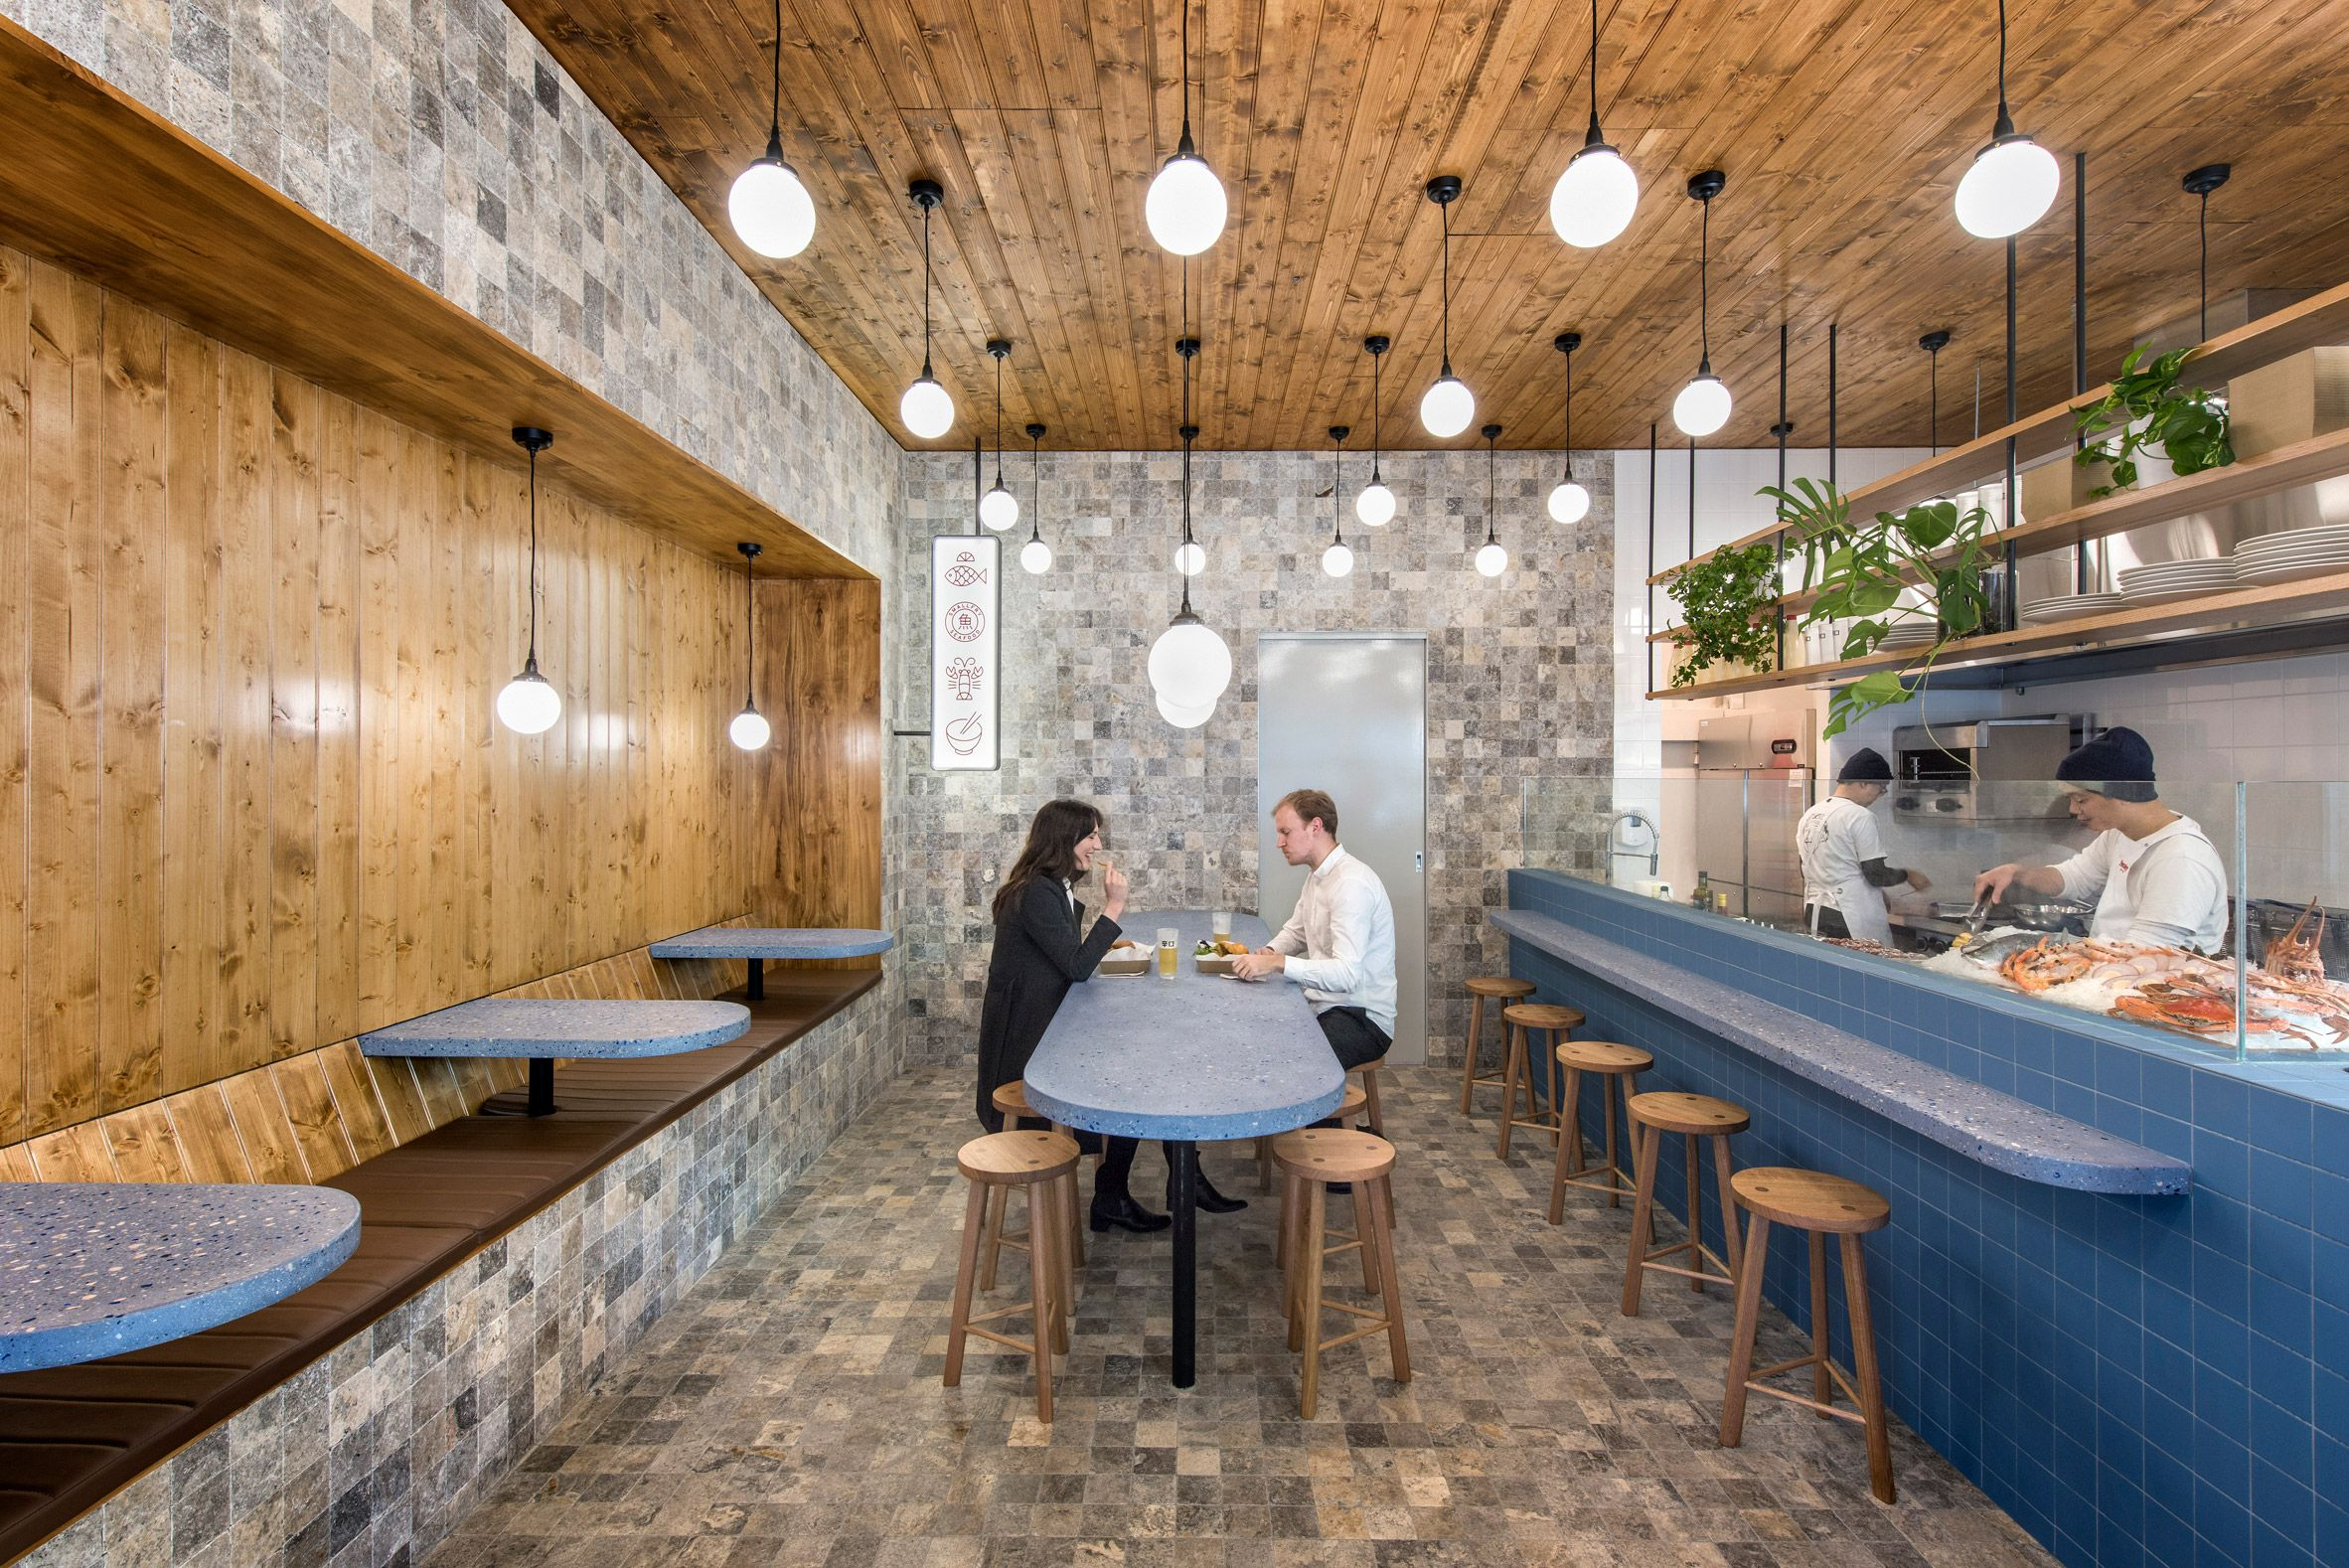 Sans Arc Studio Updates Traditional Fish And Chip Shop Decor With